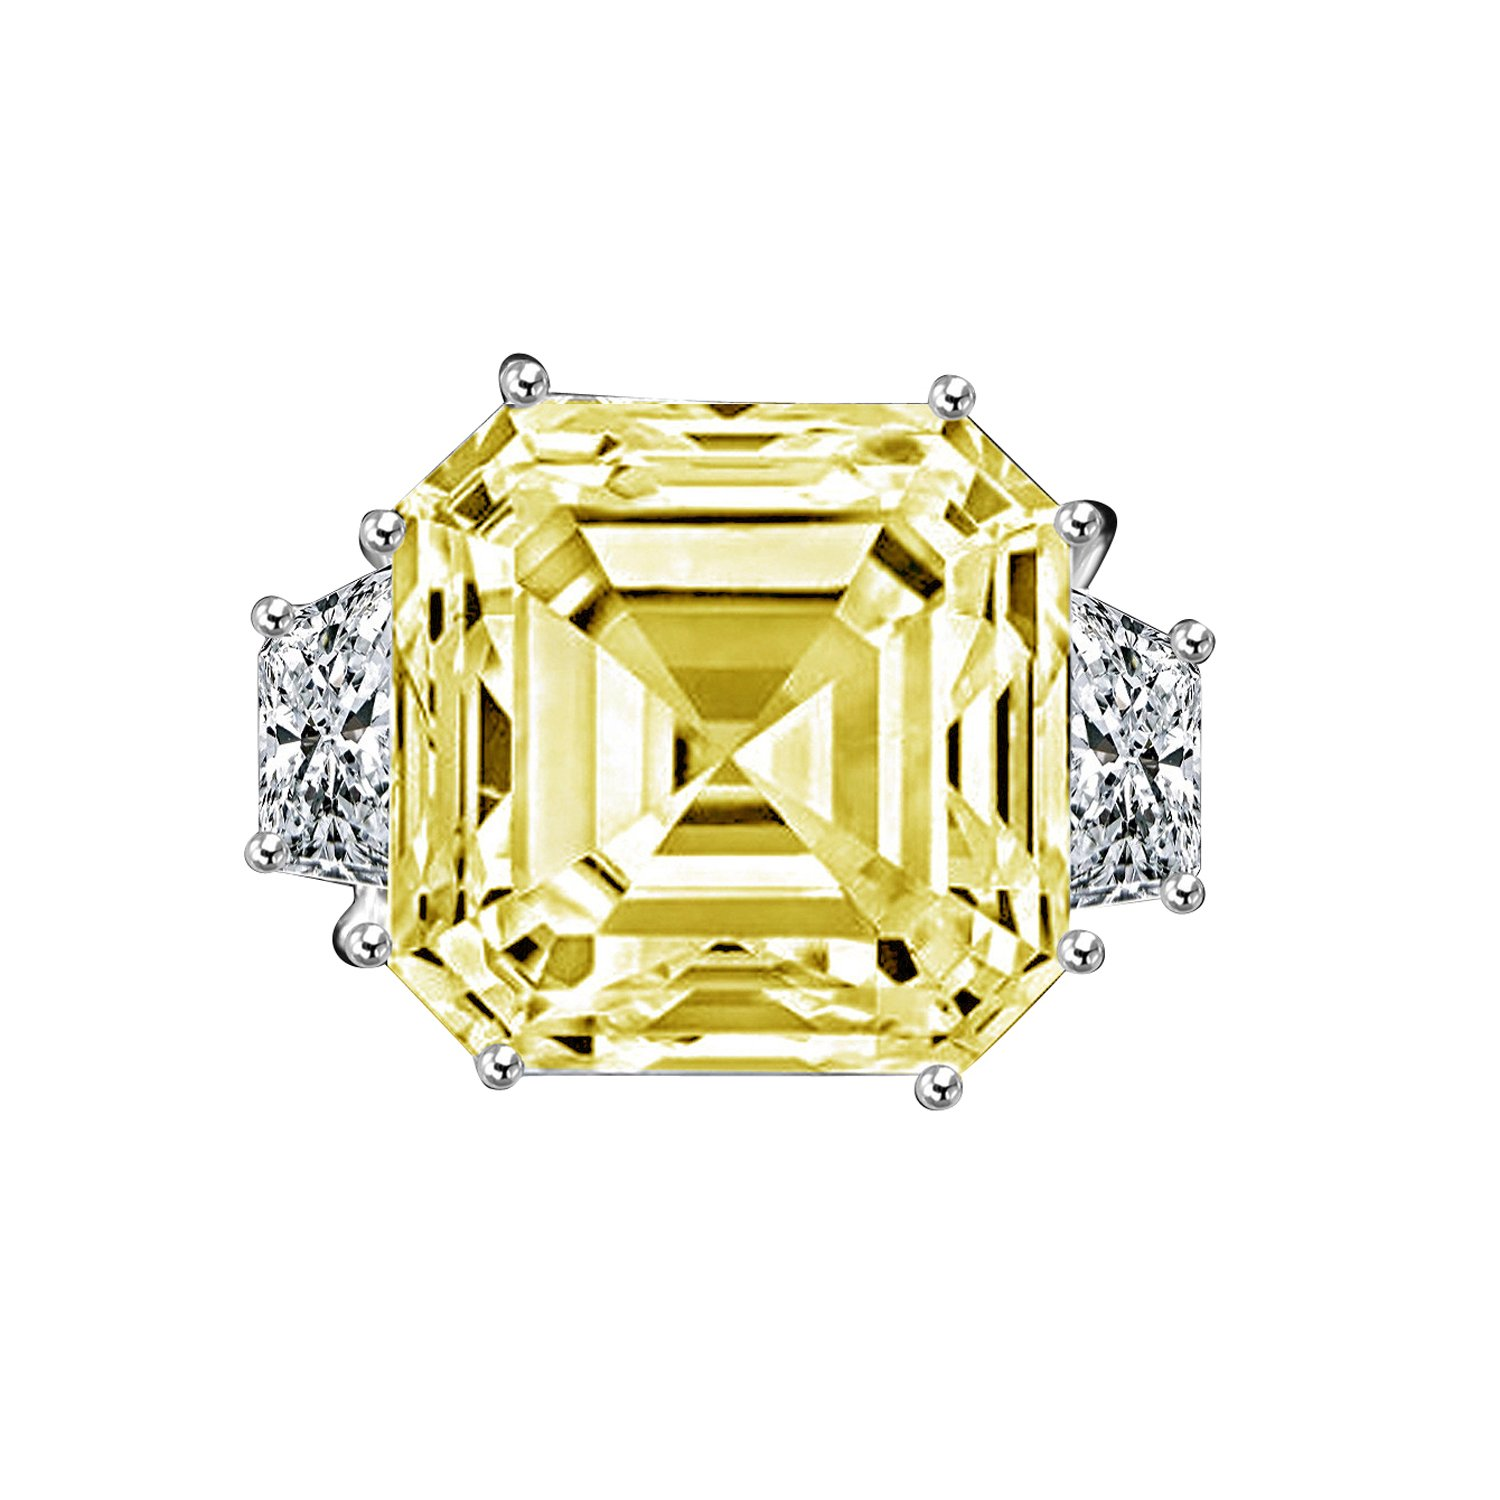 Diamond Veneer - 12Ct. Asscher Cut Center Set With Double Sided Baguettes Vintage Ring Simulated Diamond (Canary, 6)